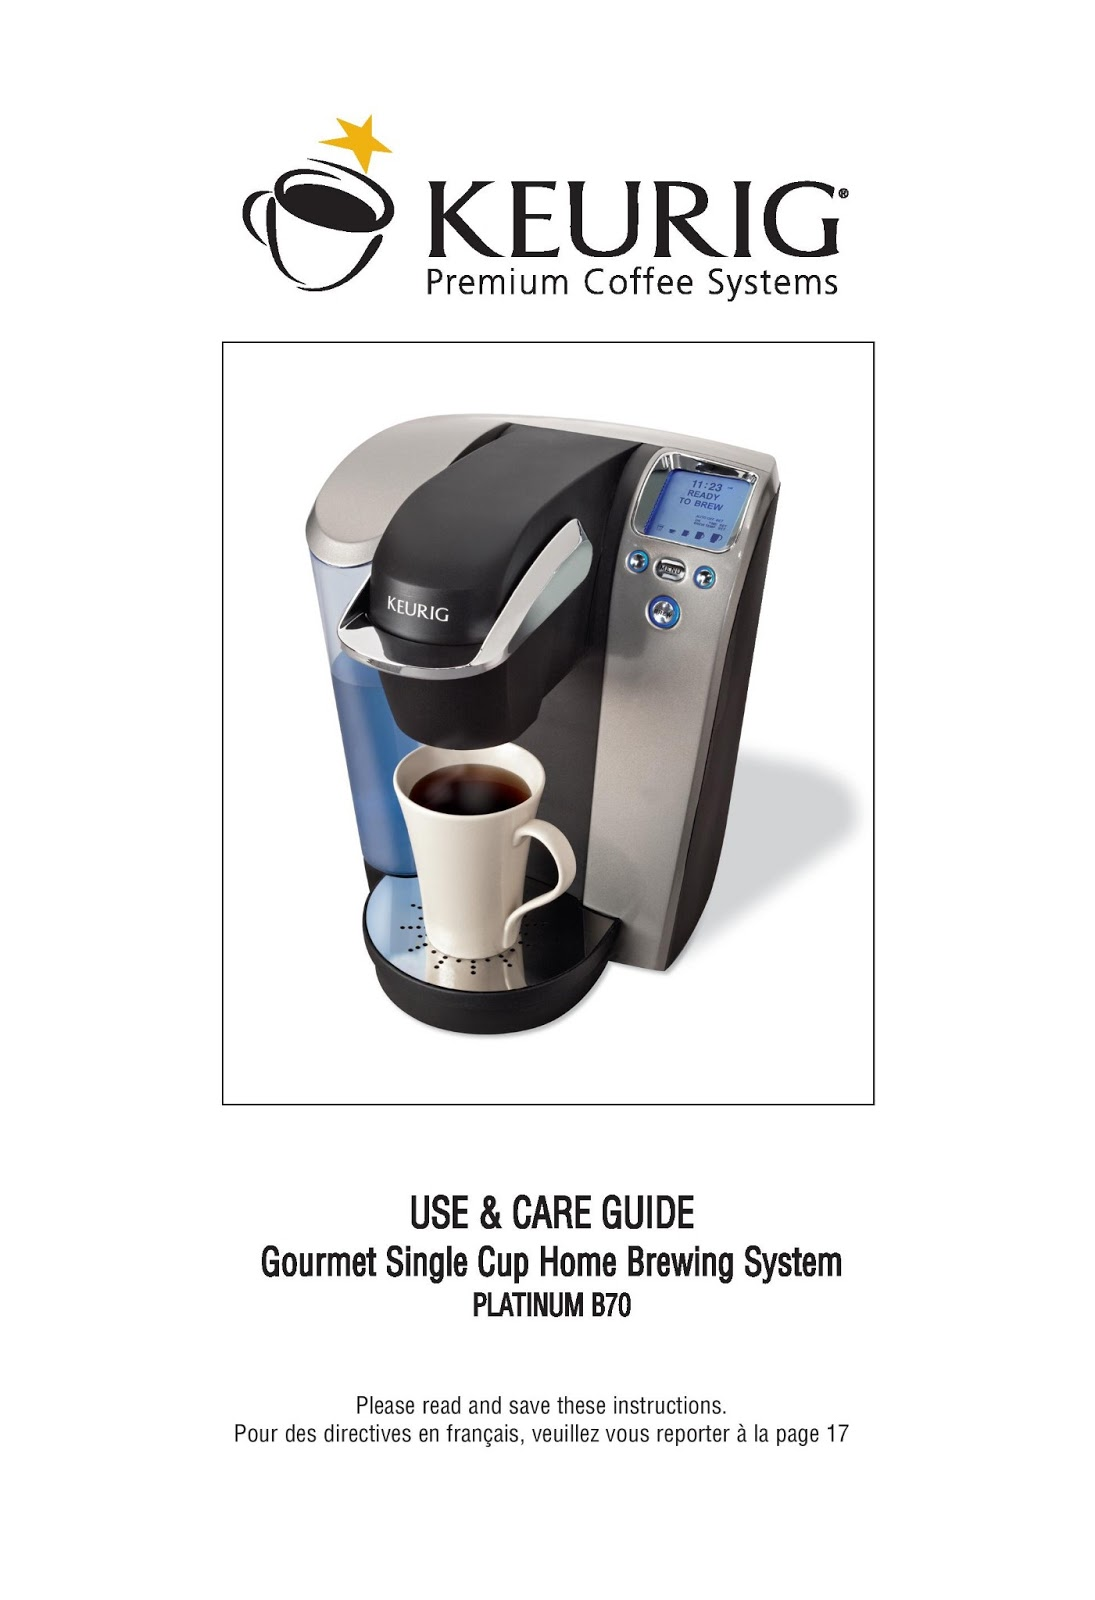 Keurig Coffee Maker Instructions : Keurig B70 Platinum Manual Keurig B70 Platinum Brewing System